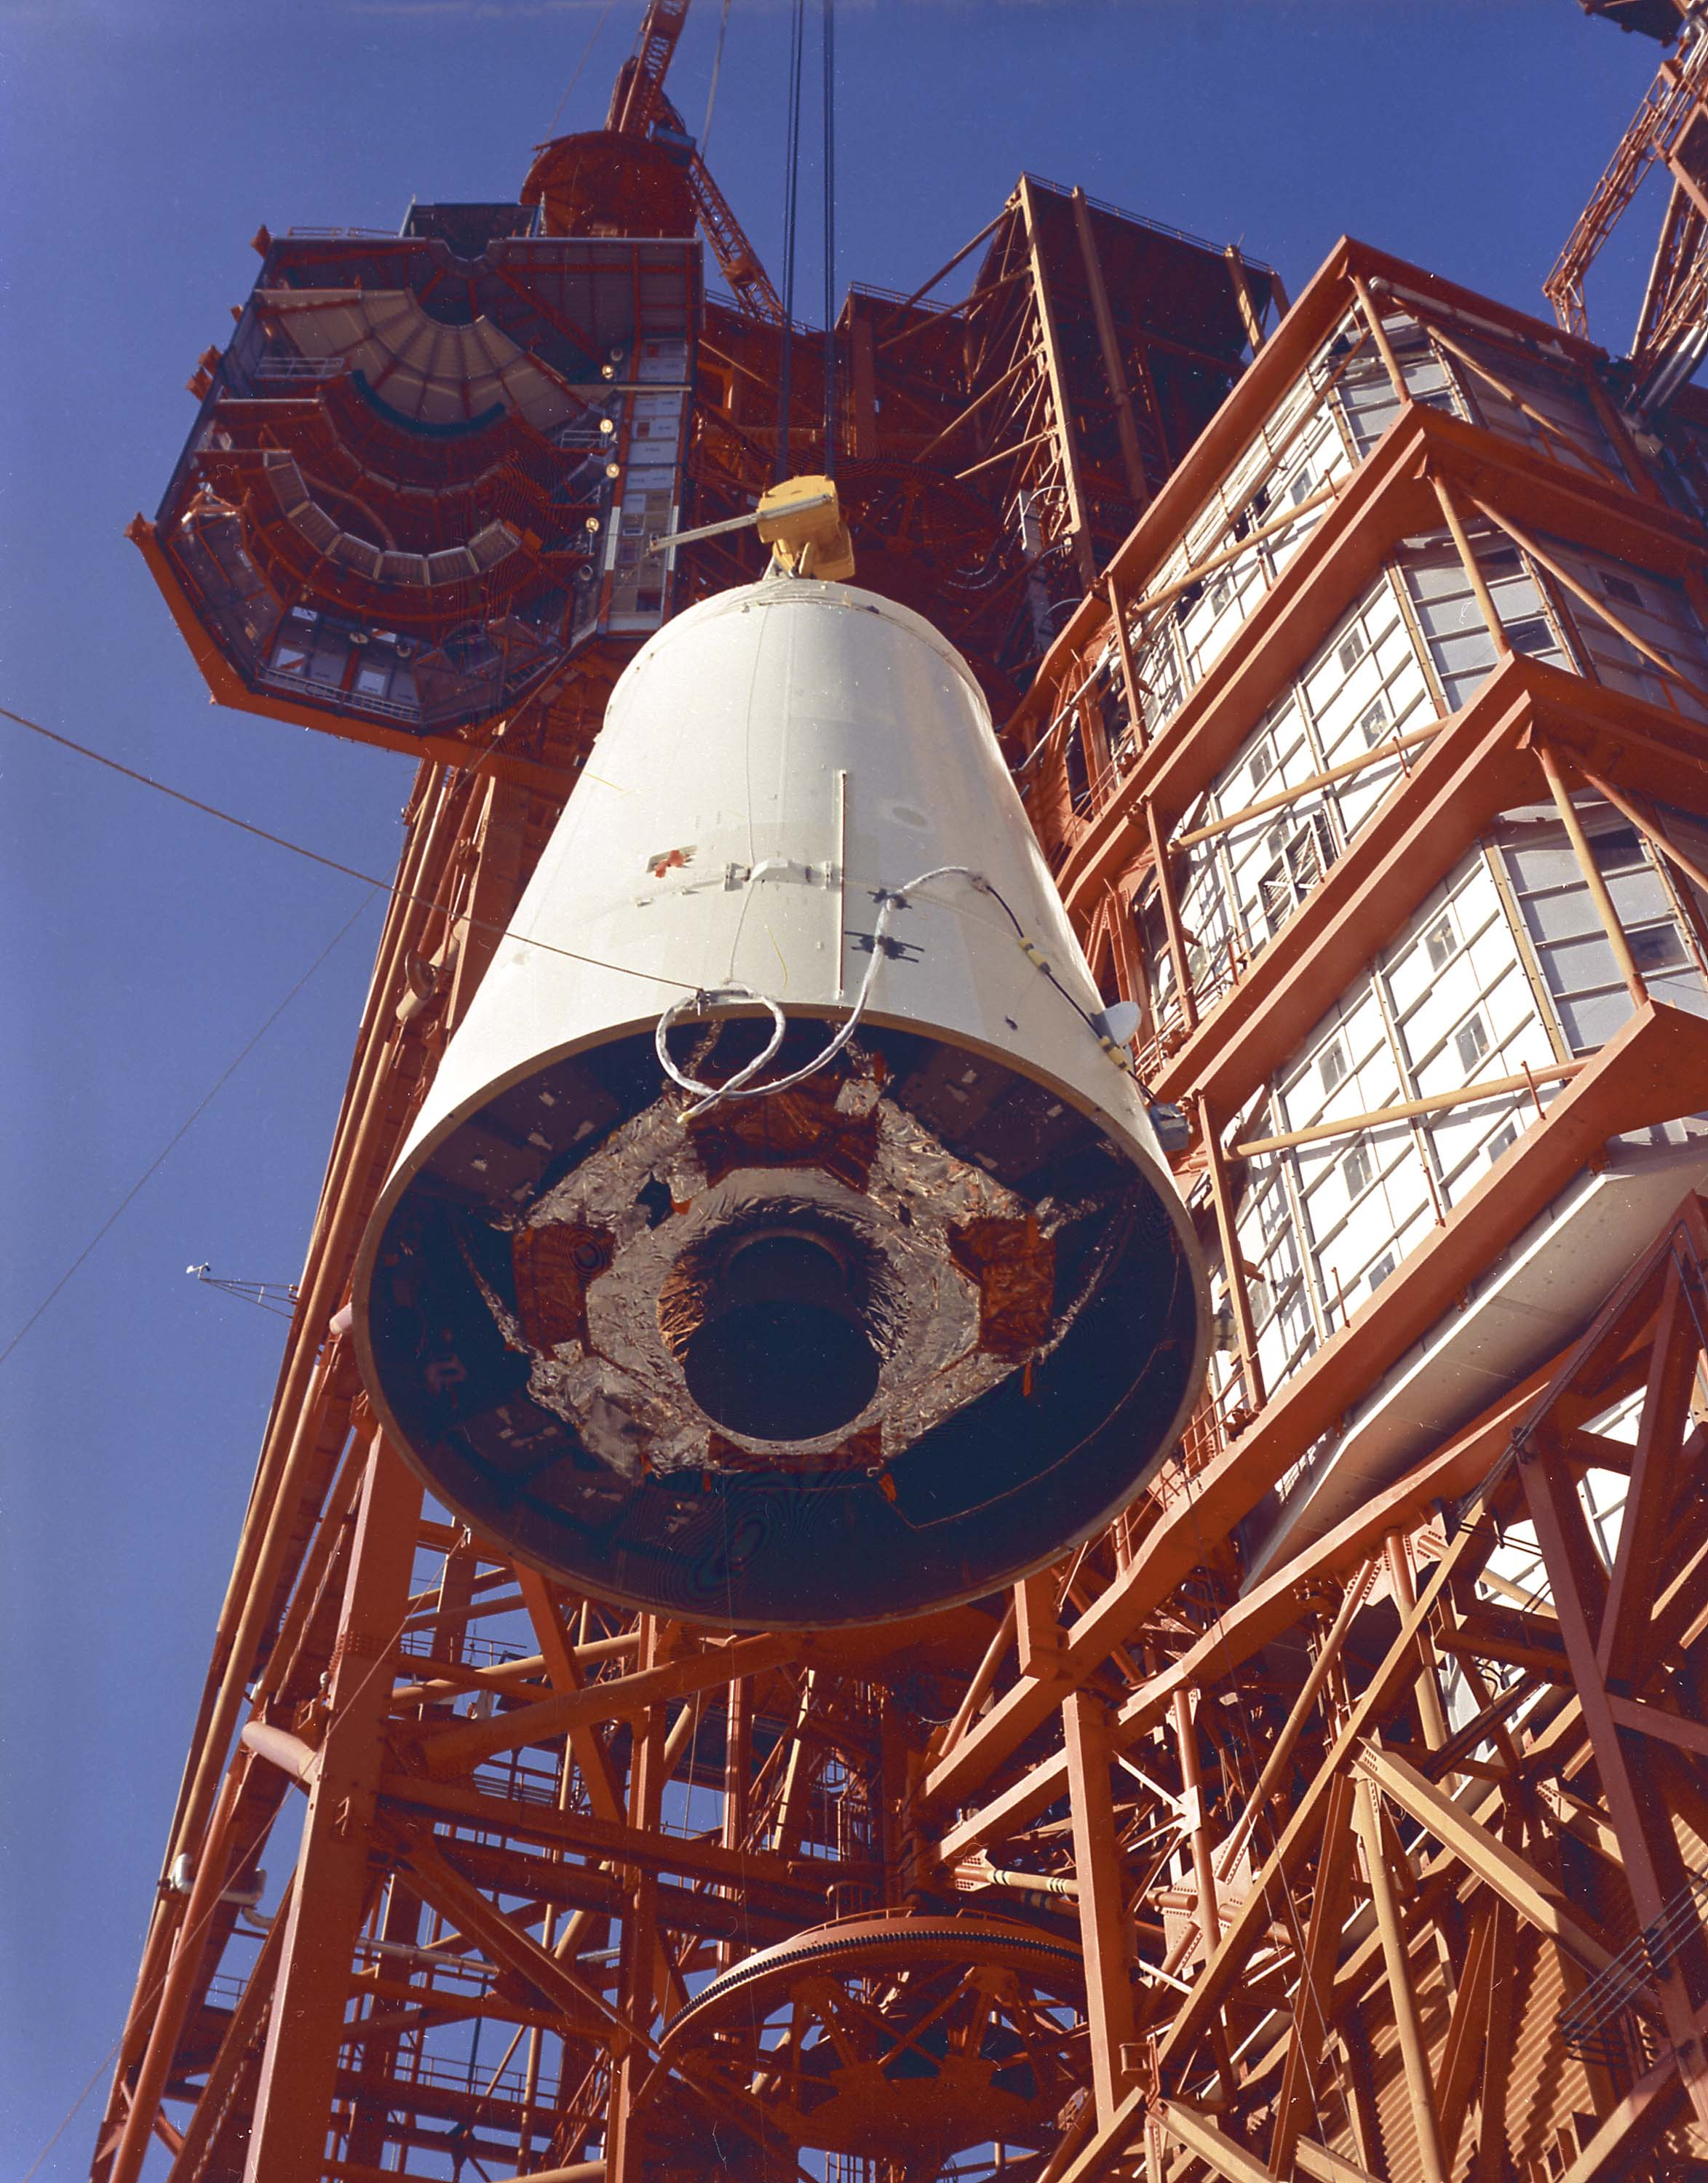 apollo 5 spacecraft - photo #28